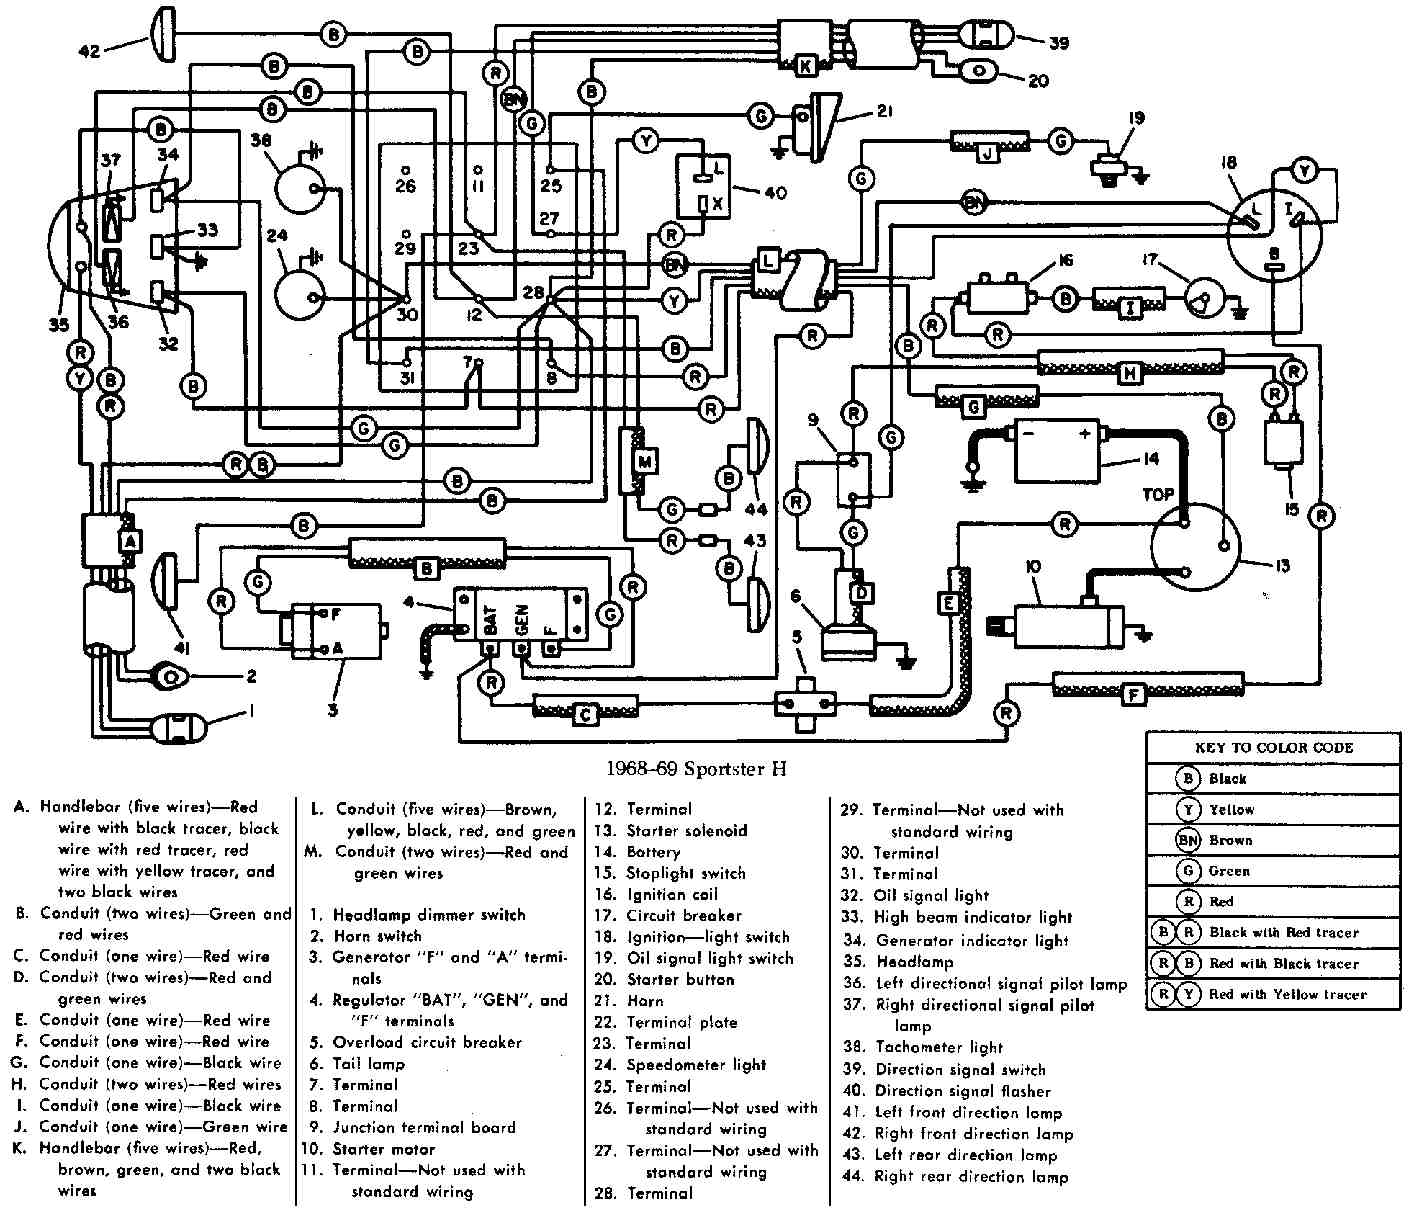 13496 Manual  plete Electrical Schematic Free Download 1968 Mercury Cougar moreover 3gkc1 1964 Tempest Horn Dosen T Work When Depressing further 1281011 1953 Turn Signal Wiring together with RepairGuideContent additionally P 0900c152802689b9. on 1969 corvette wiring diagram guide